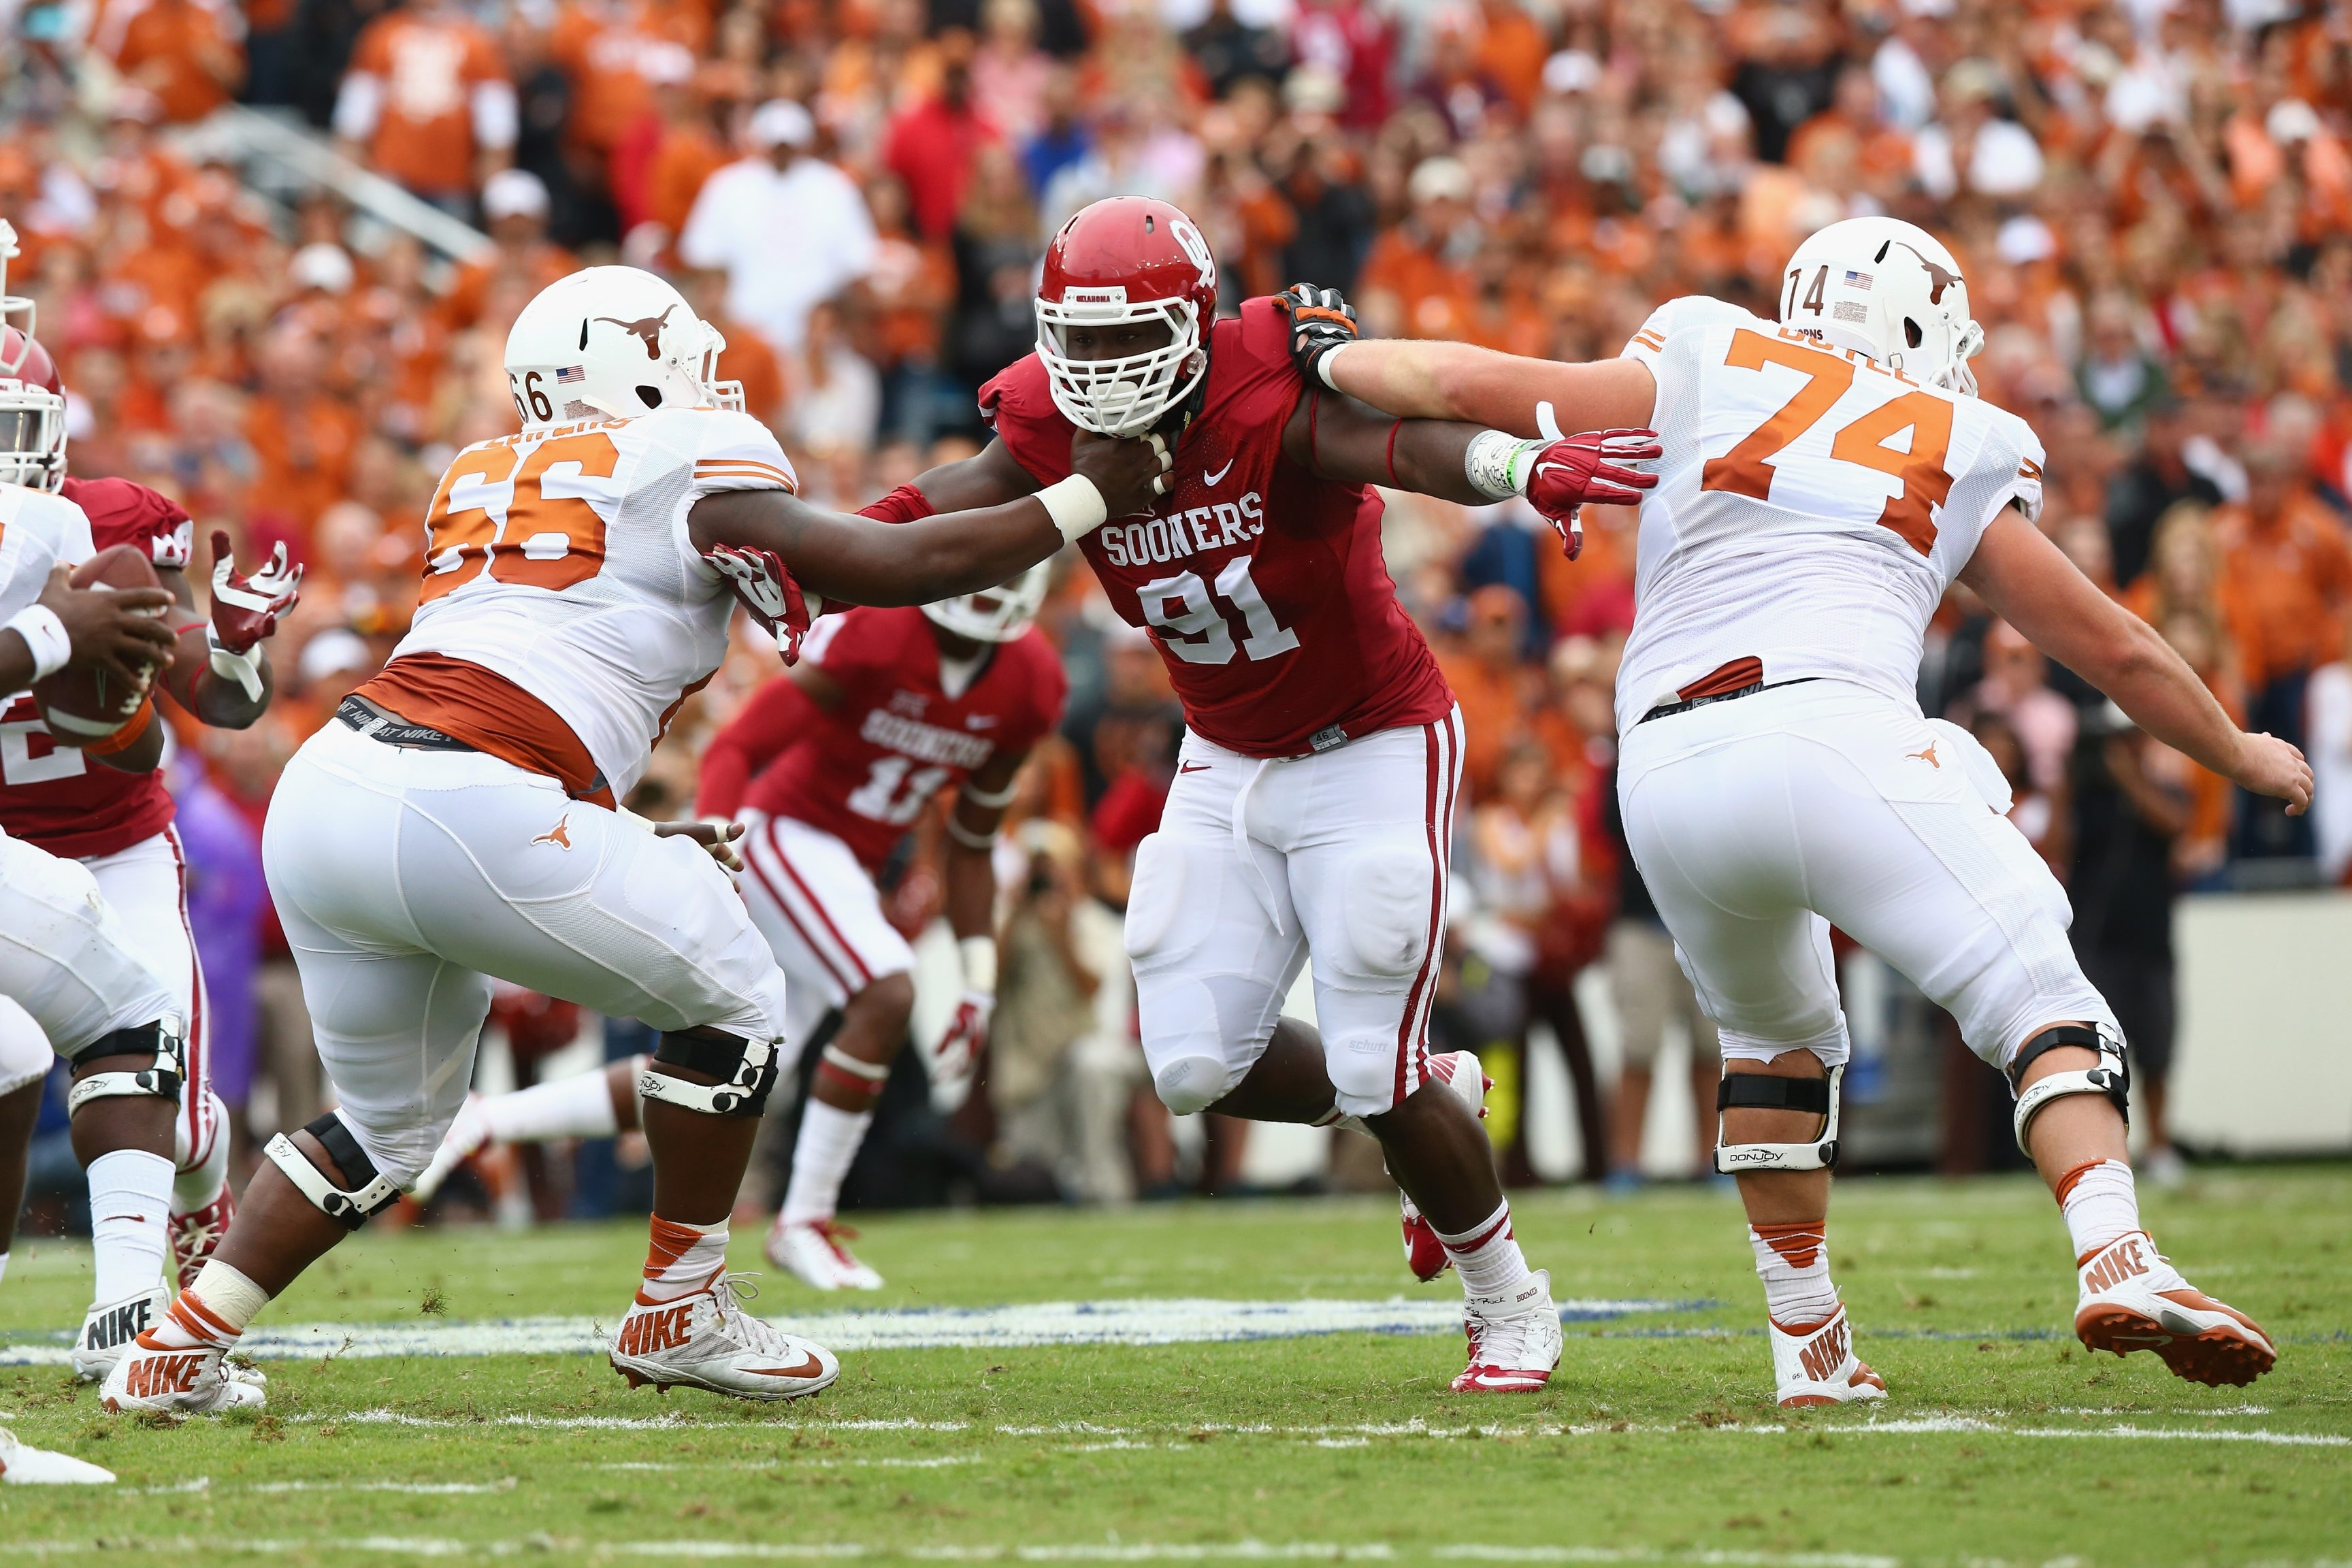 Oklahoma Sooners defensive end Charles Tapper is shown Oct. 11, 2014, at the Cotton Bowl in Dallas, Texas.